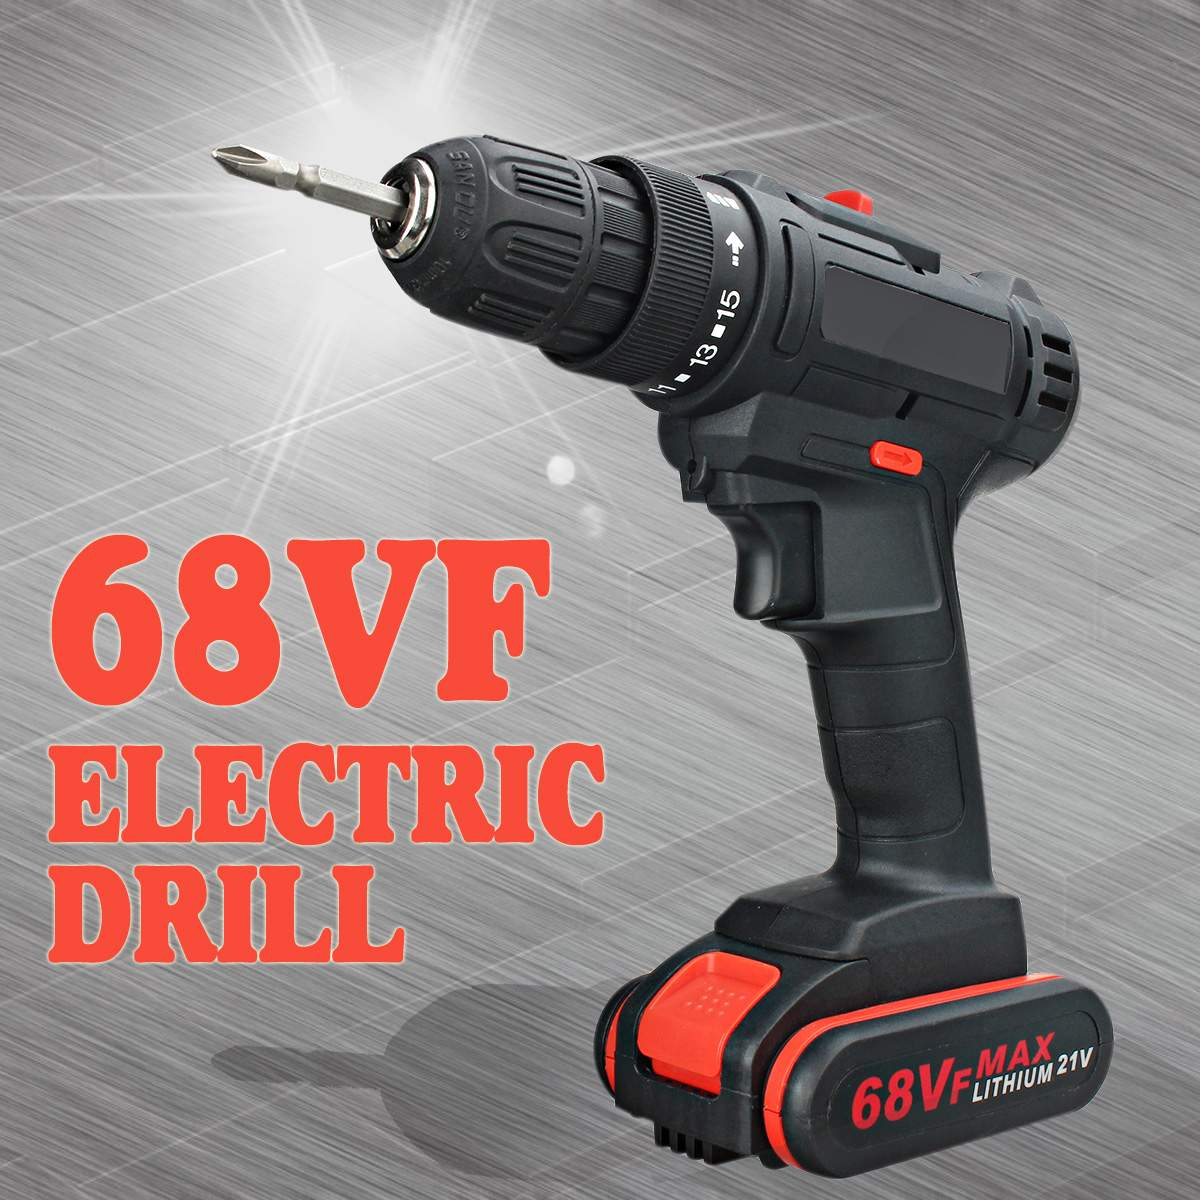 Becornce Electric Drill 68VF Cordless Lithium-Ion Drill/Driver Rechargable Adjustable 3200r/min 2 Speed Hand Drill With Battery